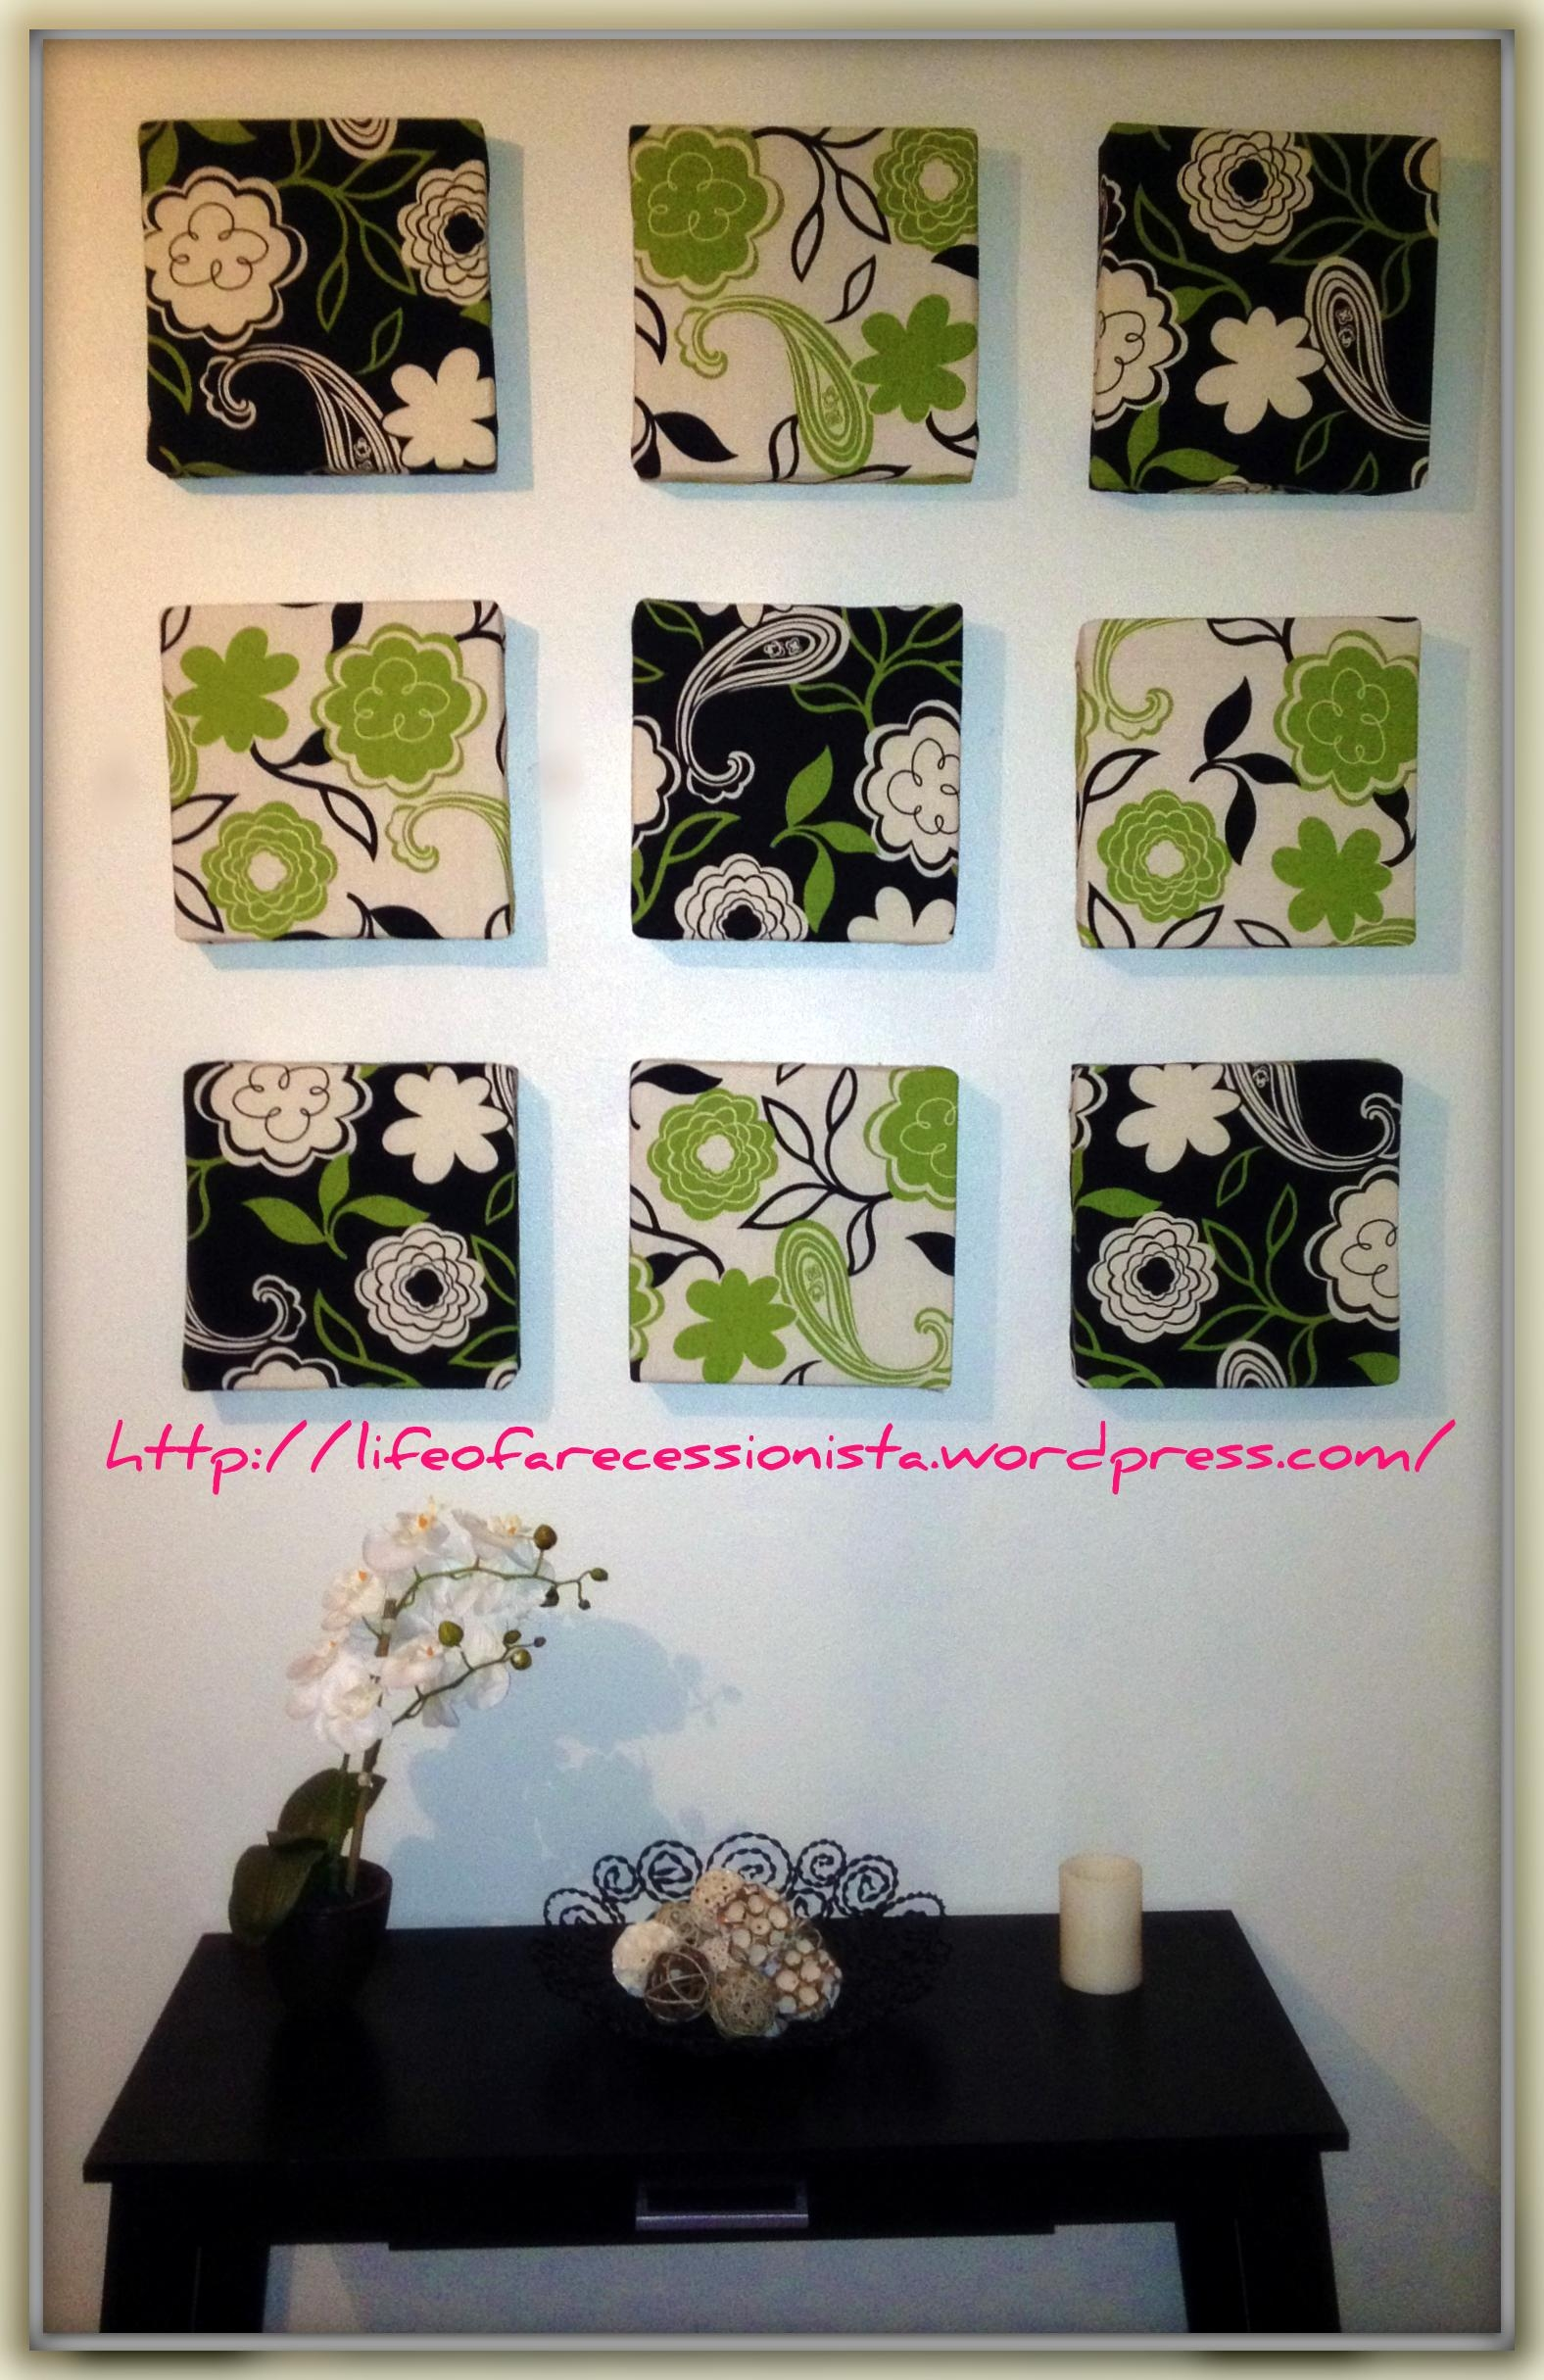 Easy Diy Wall Art | Life Of A Recessionista Pertaining To Pinterest Diy Wall Art (Photo 14 of 20)